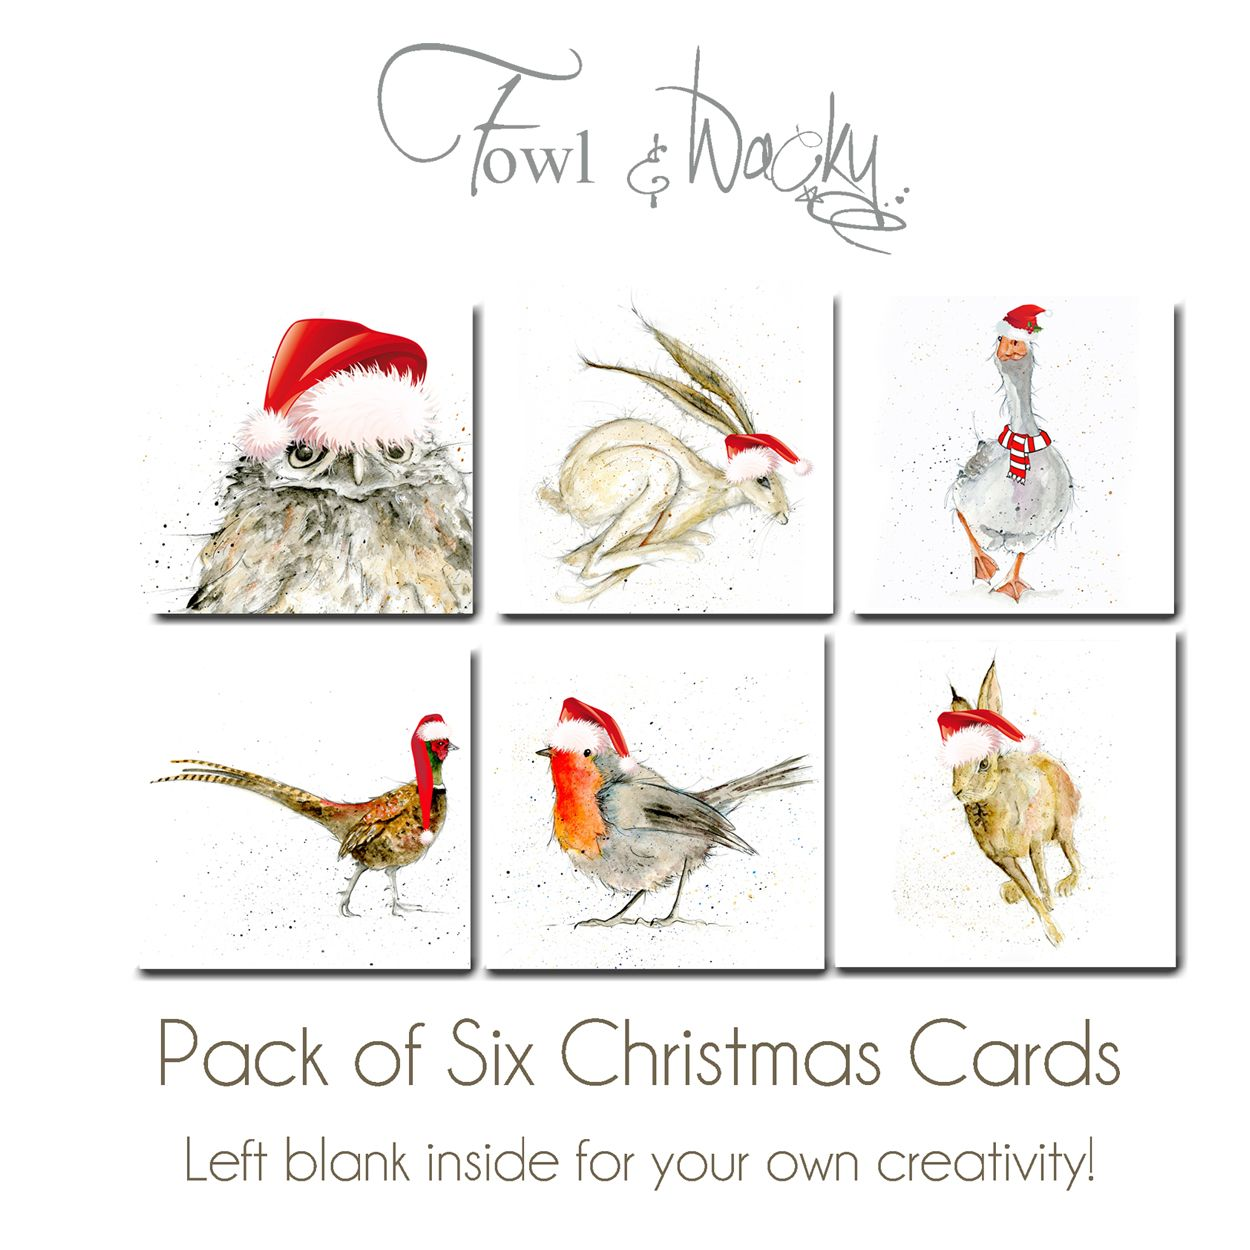 Six Animal Christmas Cards Featuring Owl, Hare, Goose